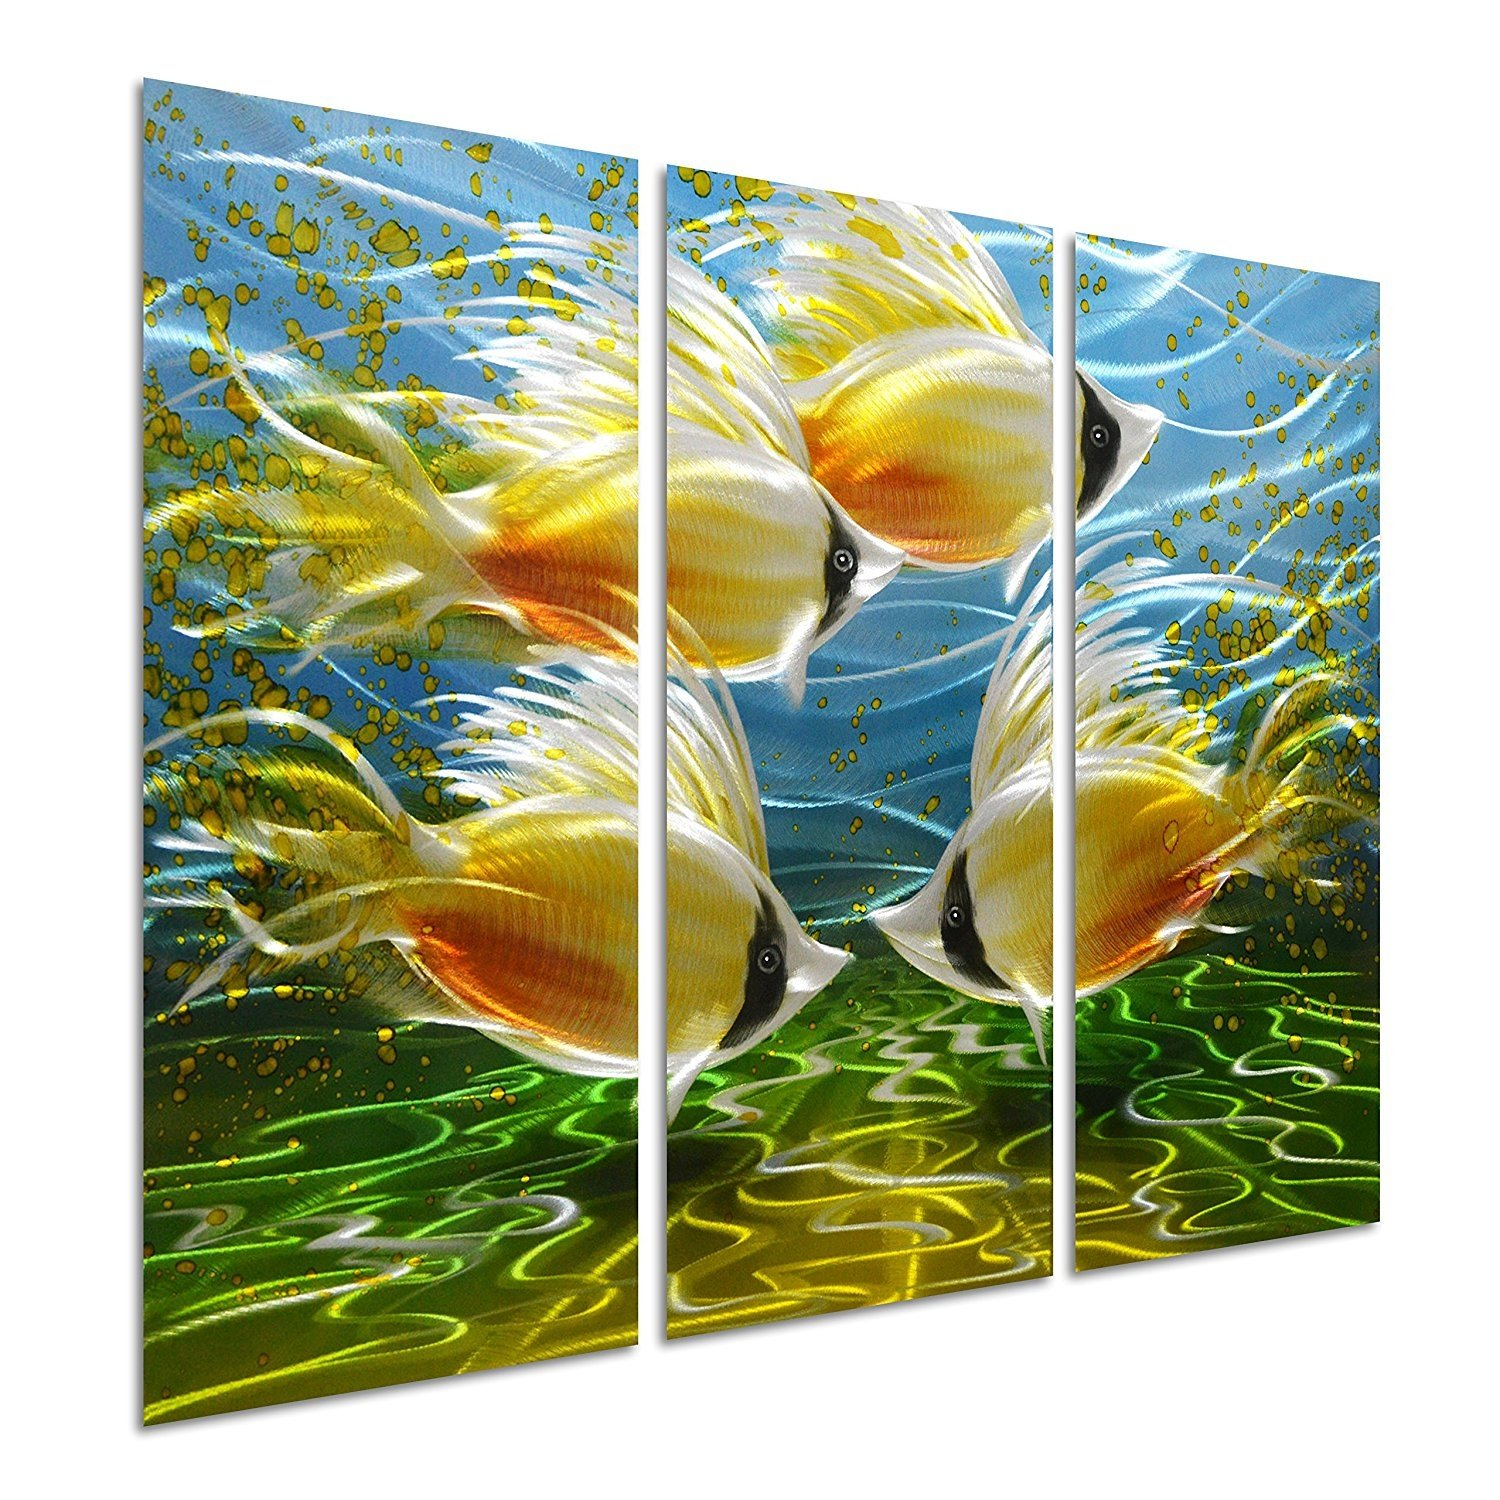 Luxury Metal Nautical Wall Art Component - The Wall Art Decorations ...